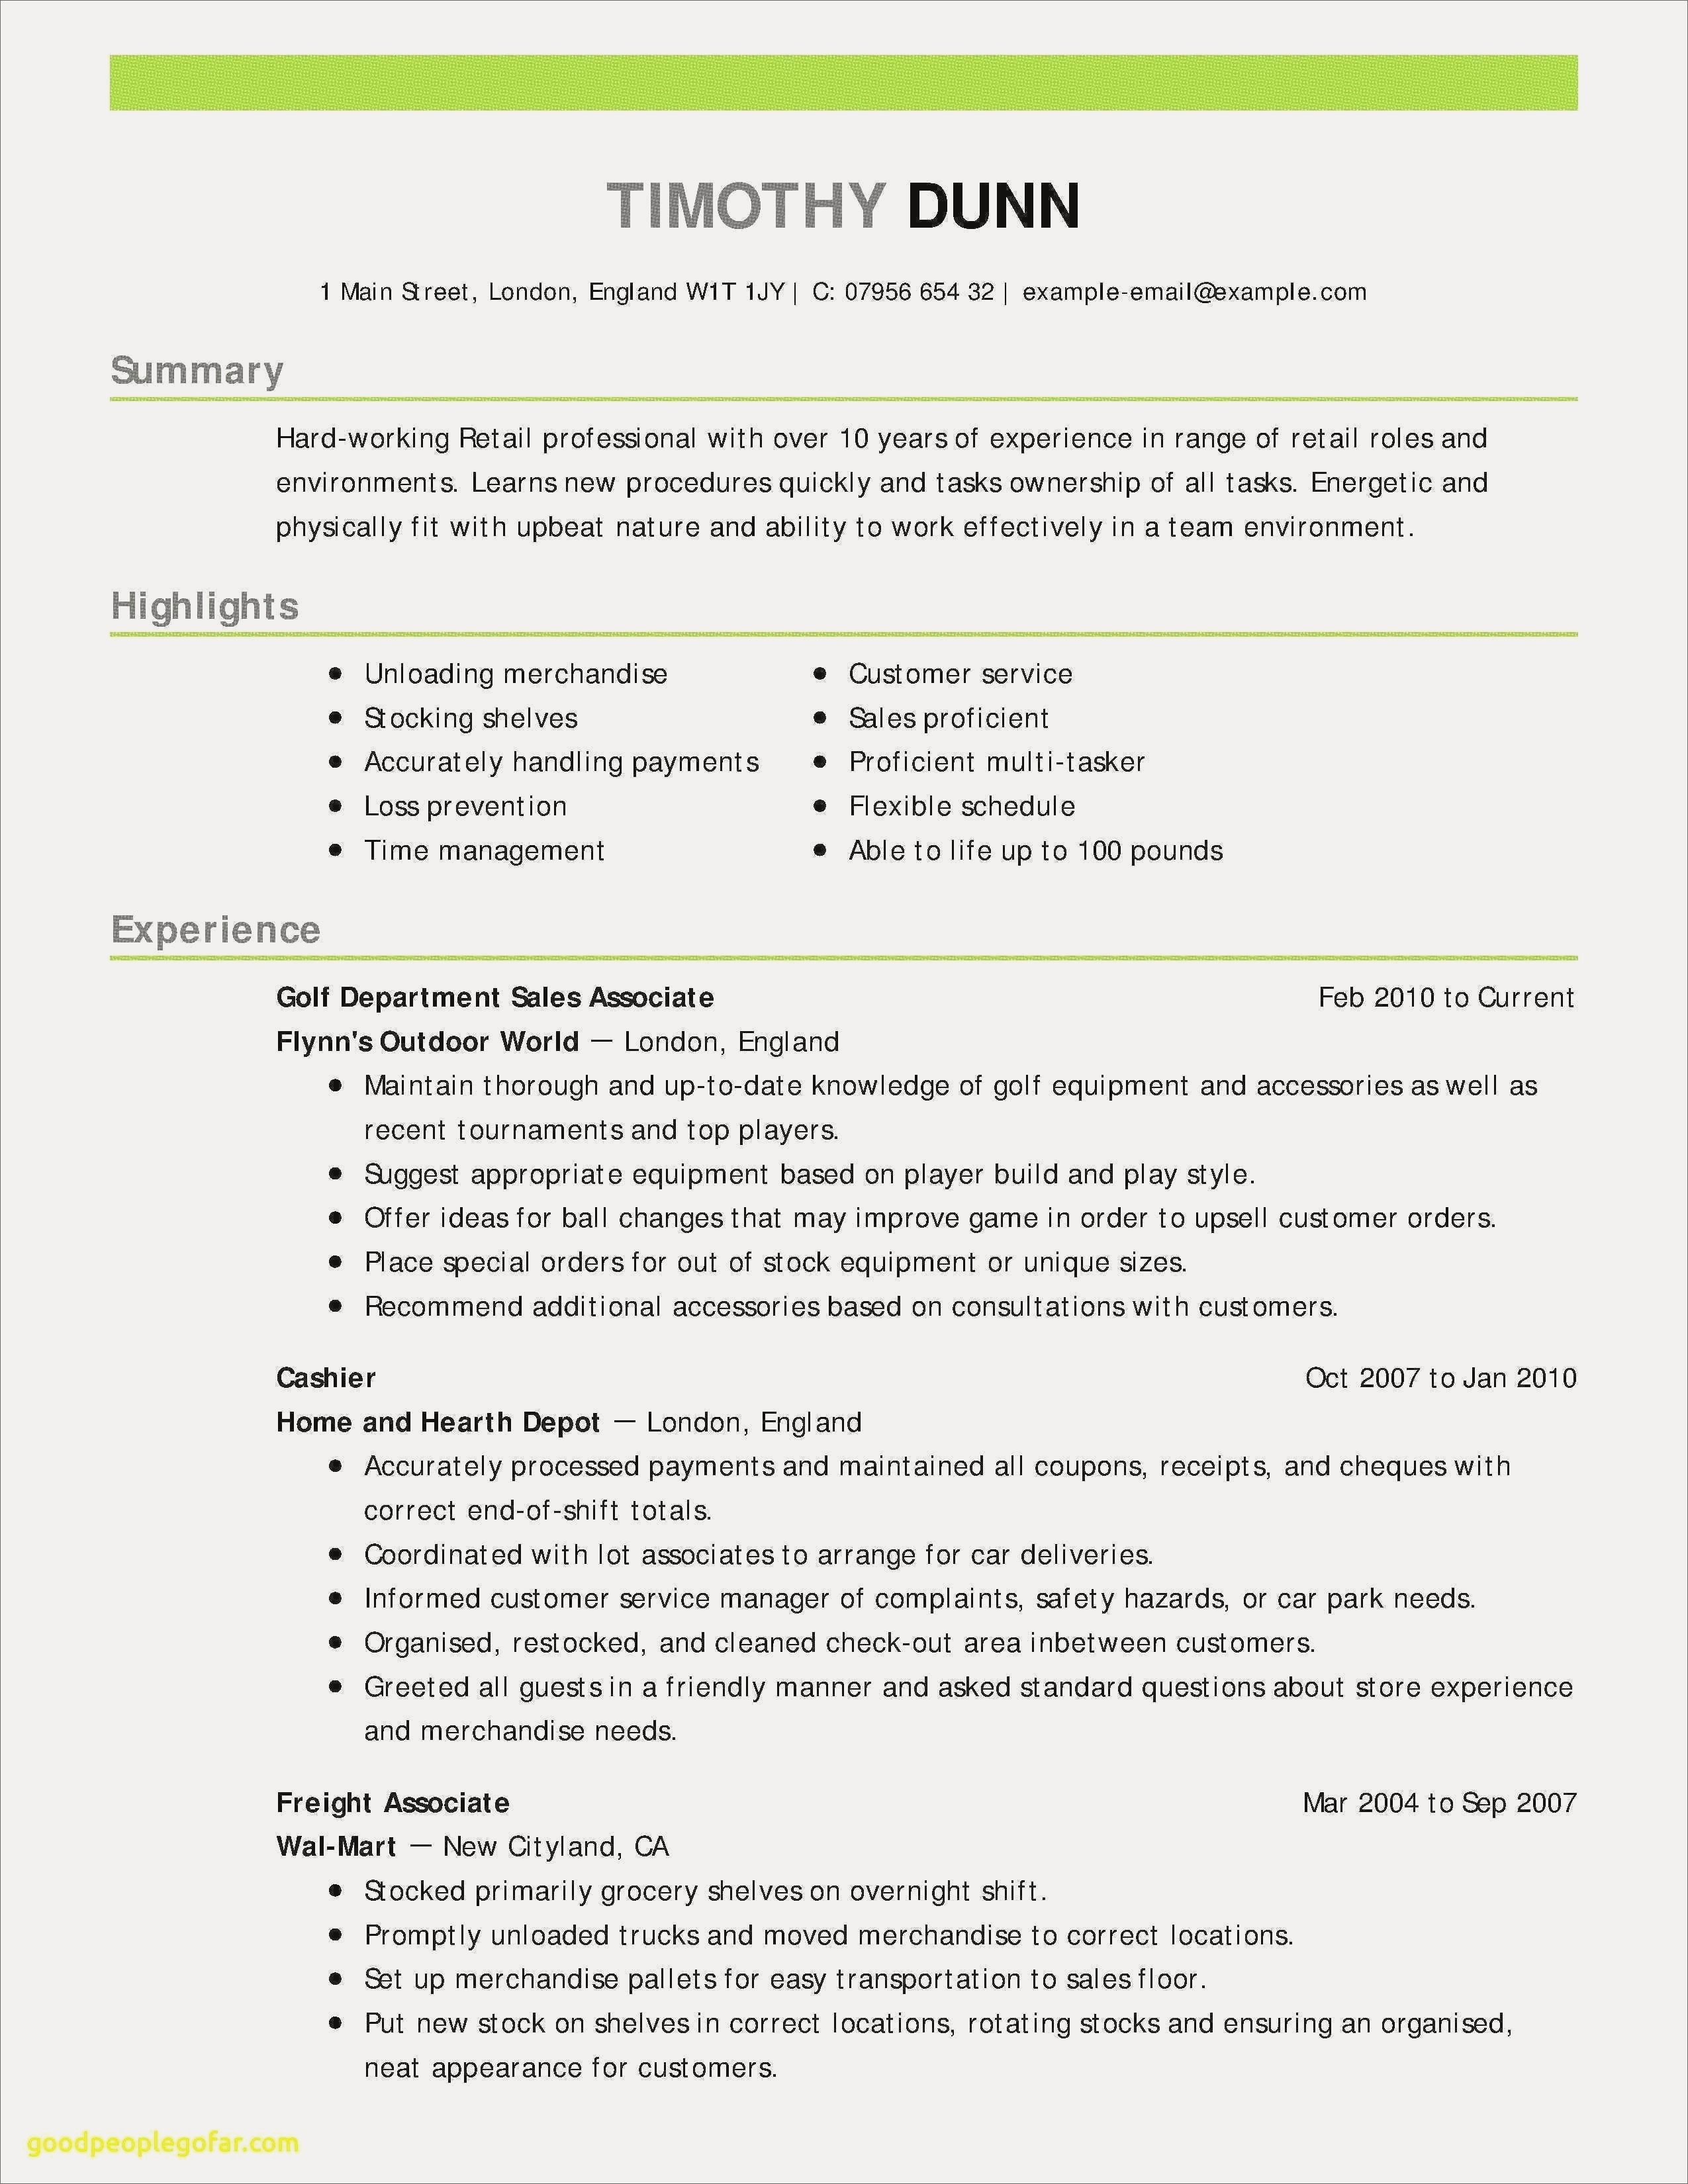 Retail Customer Service Resume 14 Retail Customer Service Resume Examples